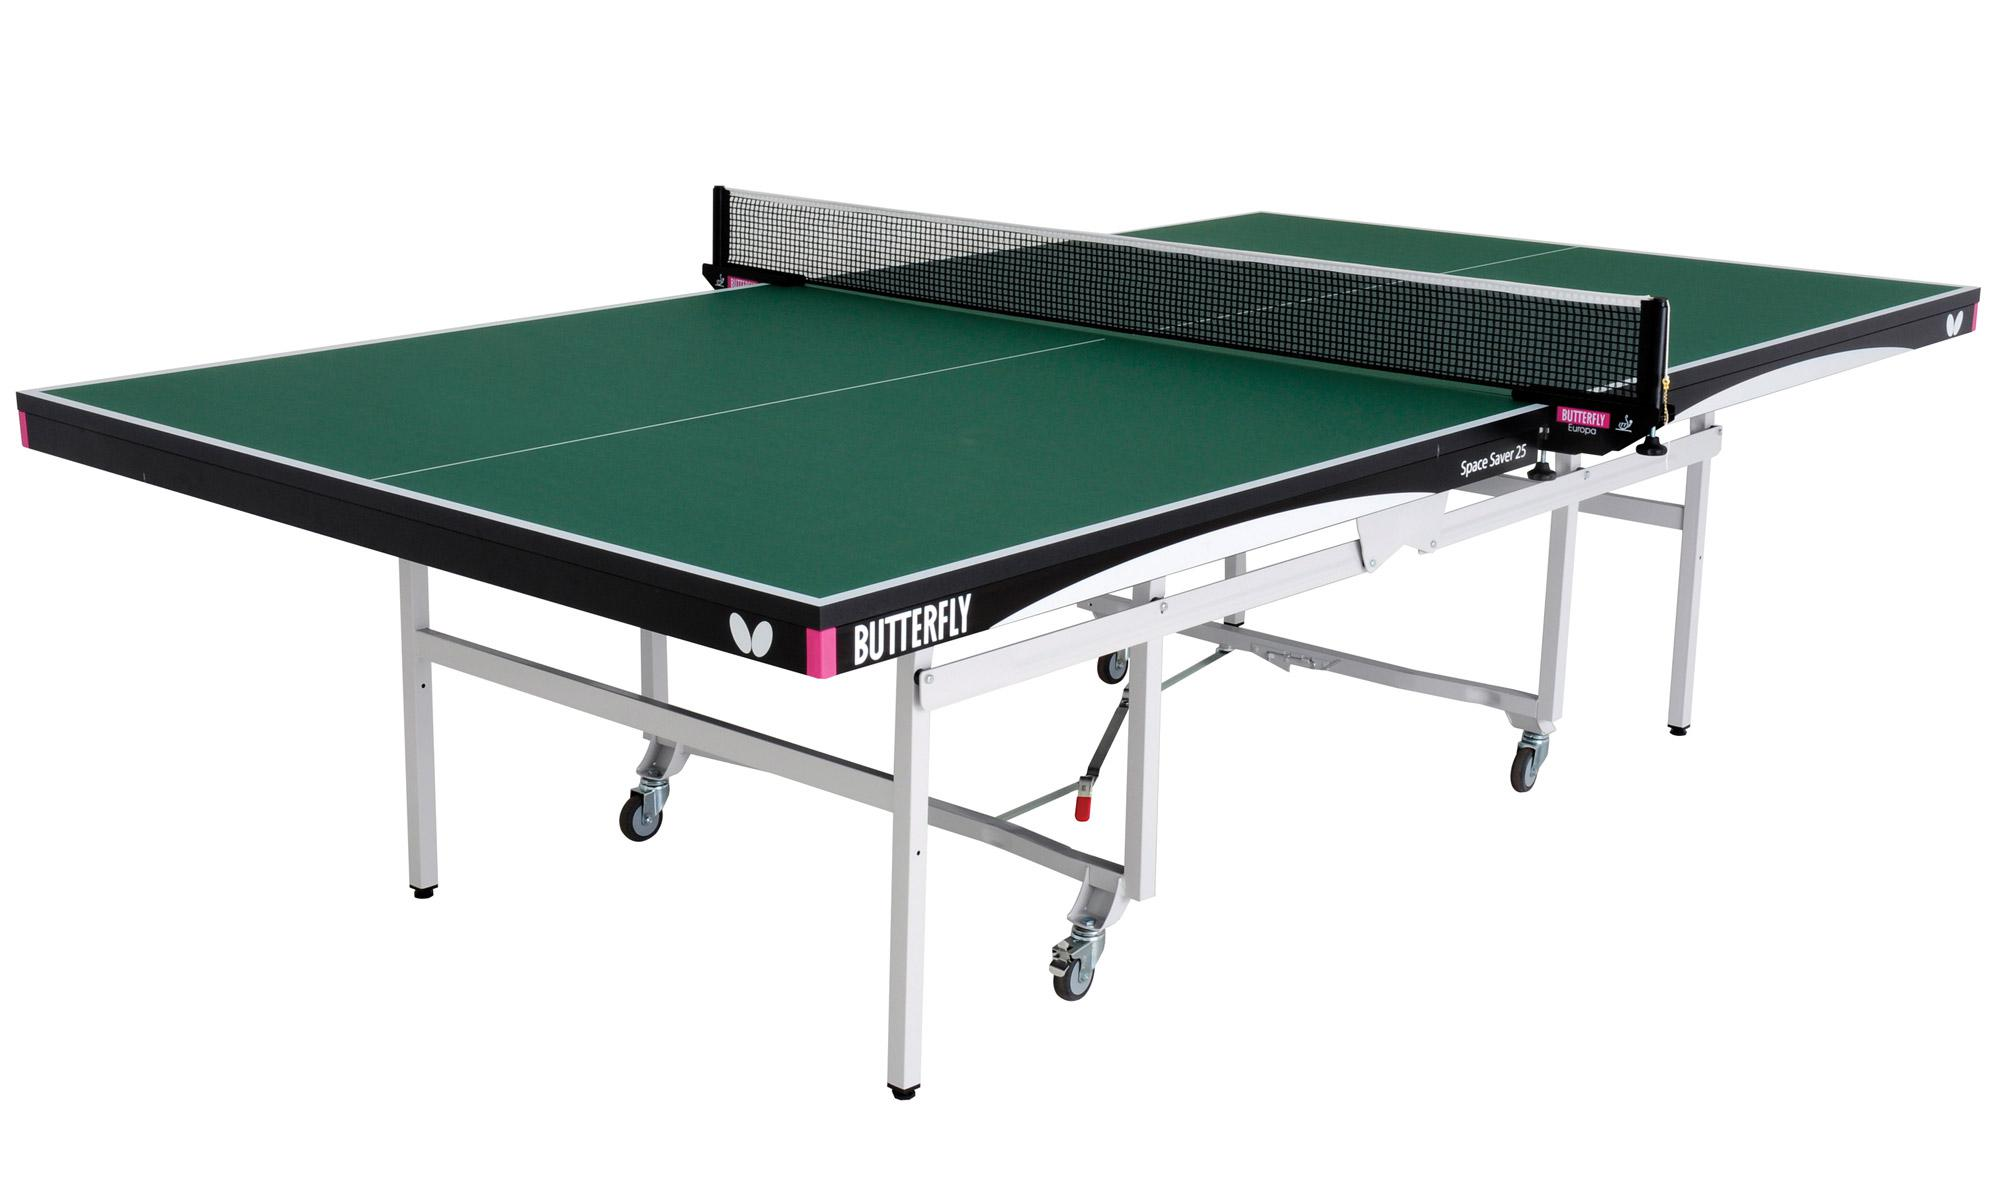 Butterfly space saver indoor rollaway 25 table tennis table for Table tennis